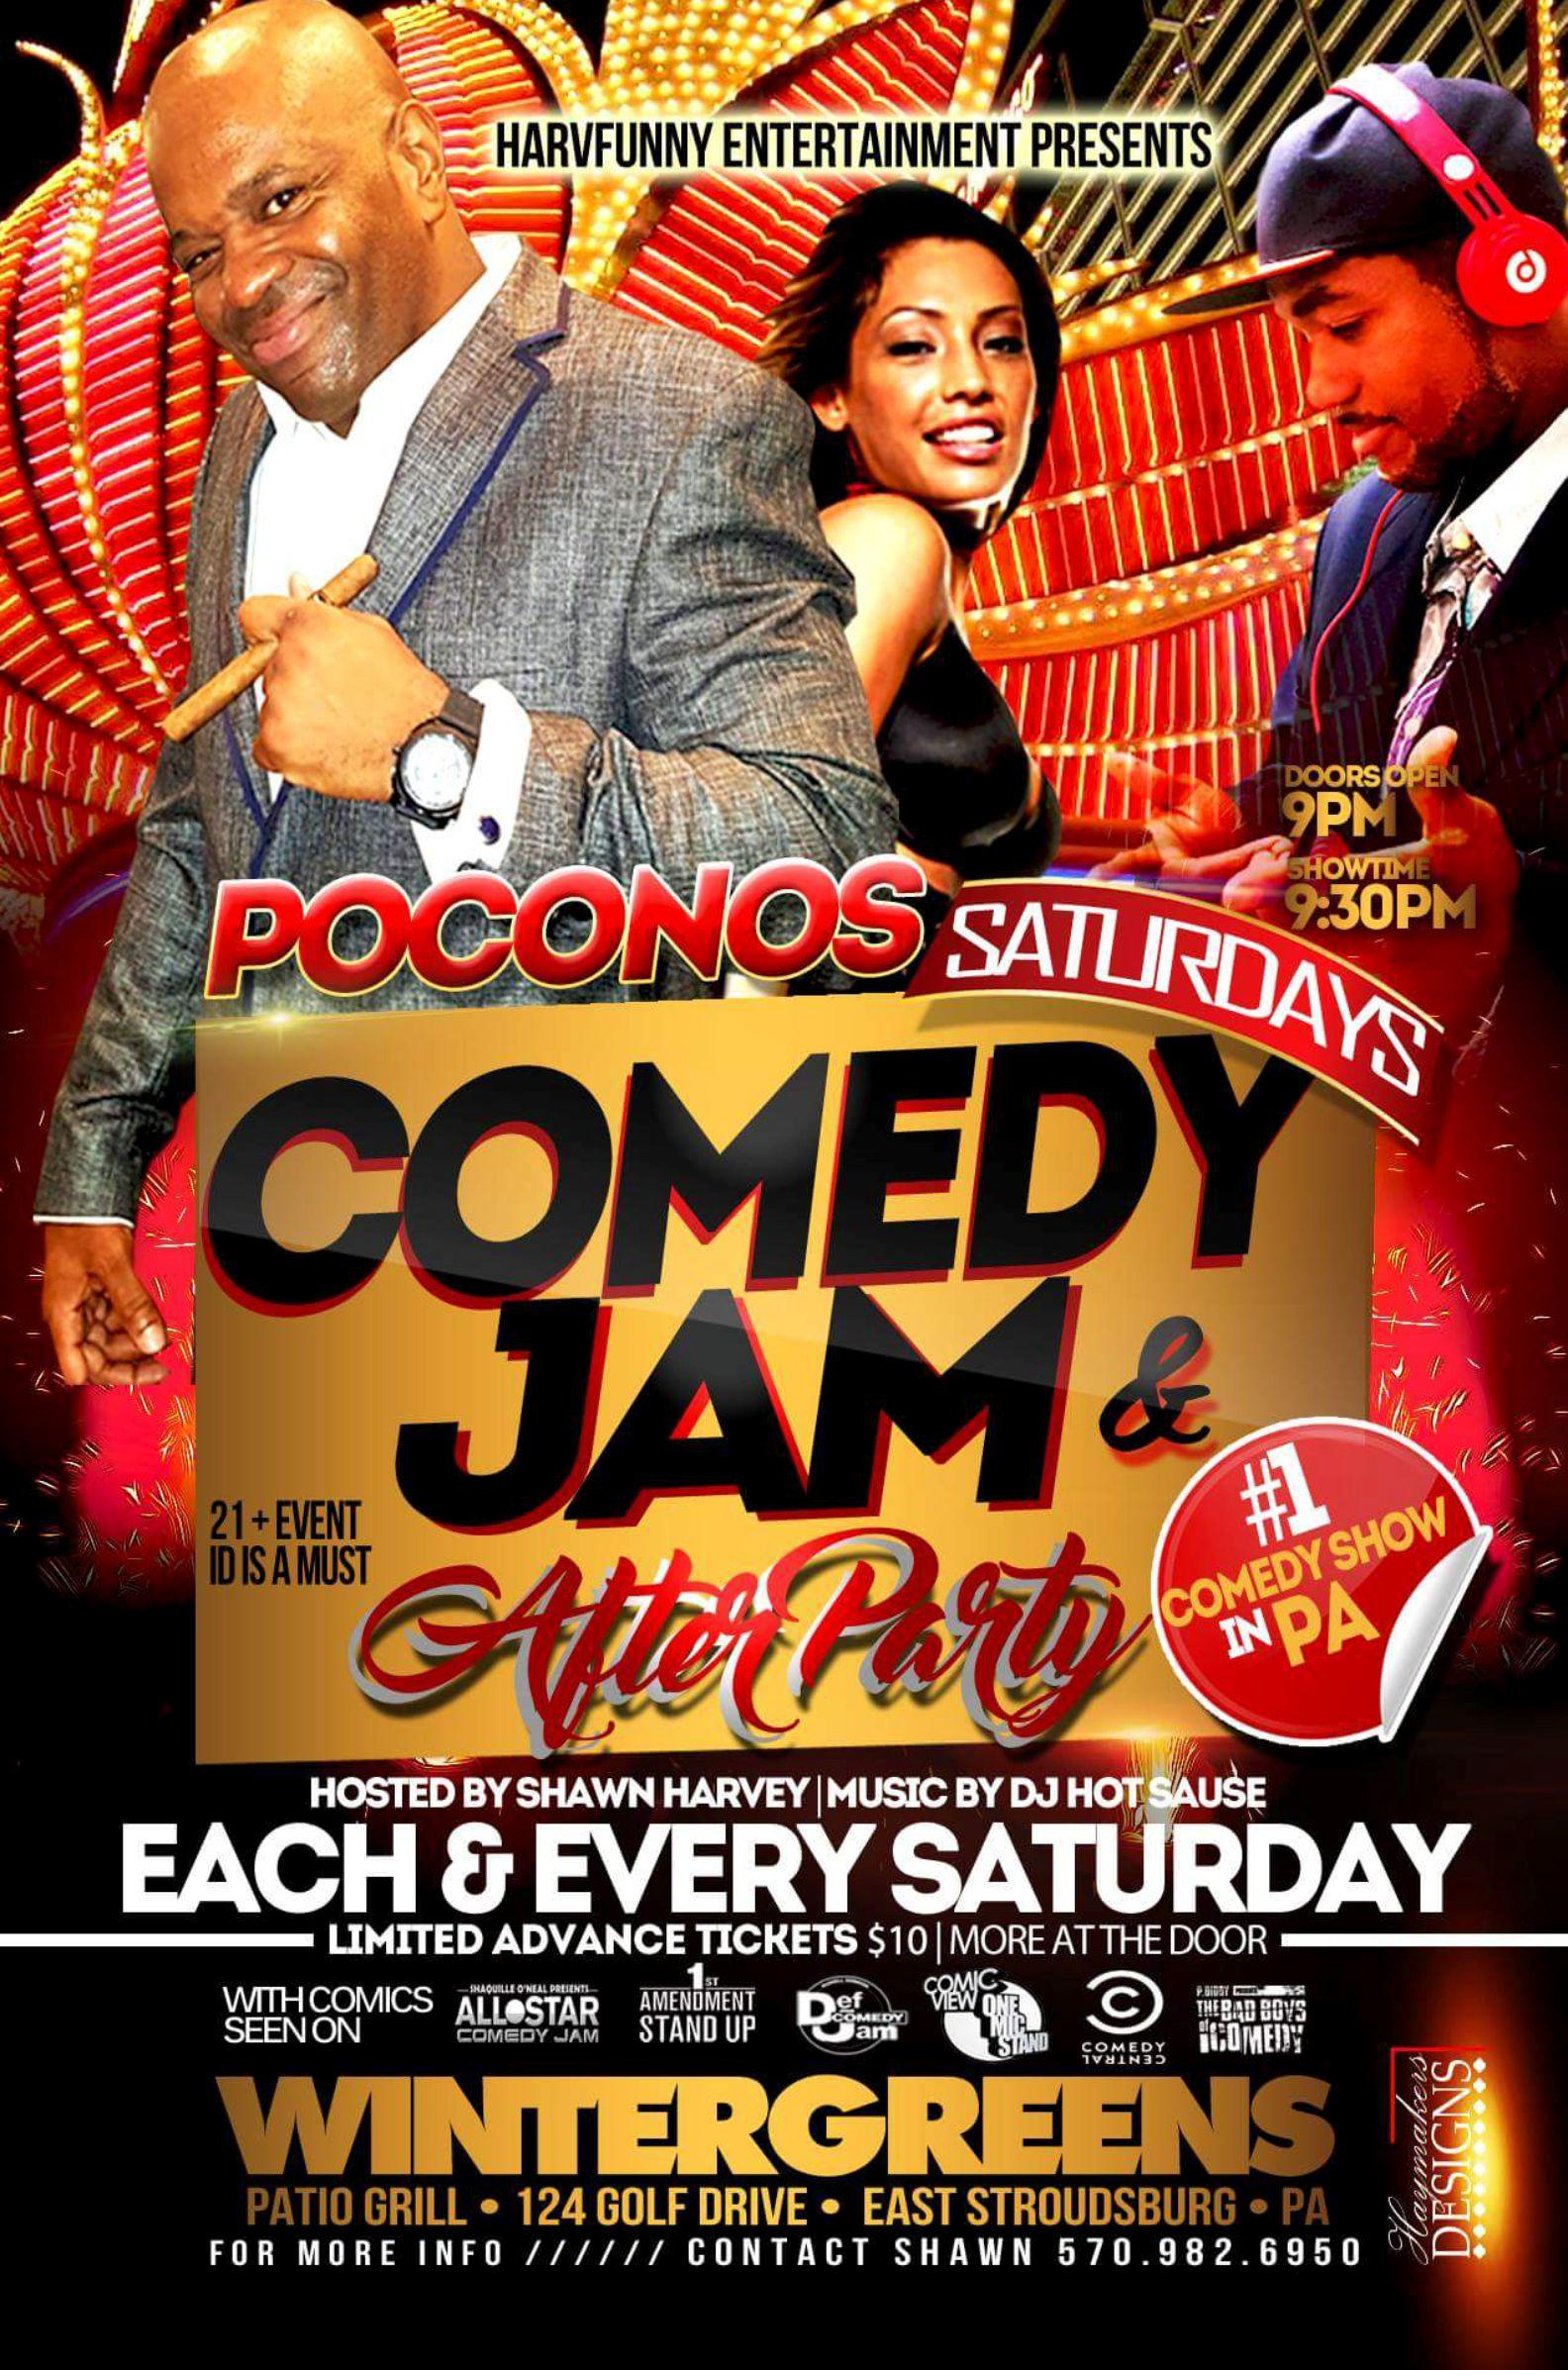 Comedy Jam & DJ After Party